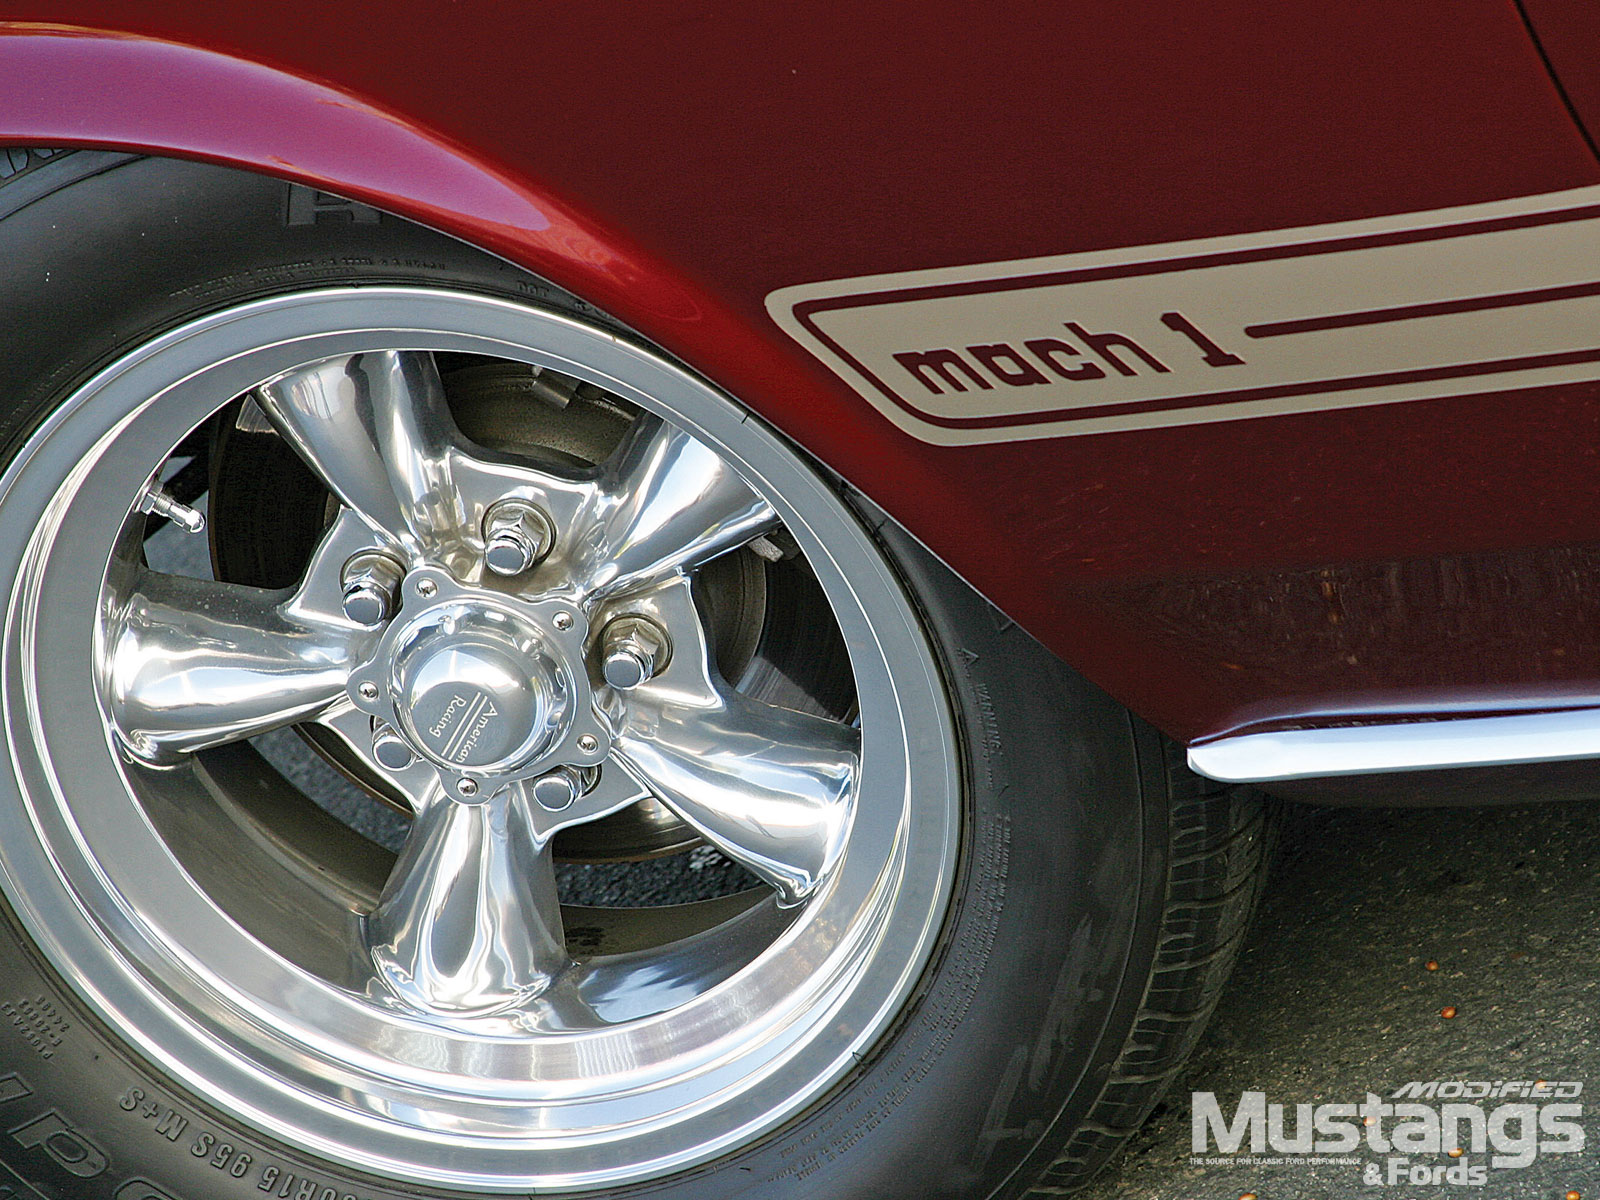 1969 Ford Mustang Mach 1 Tires And Wheels